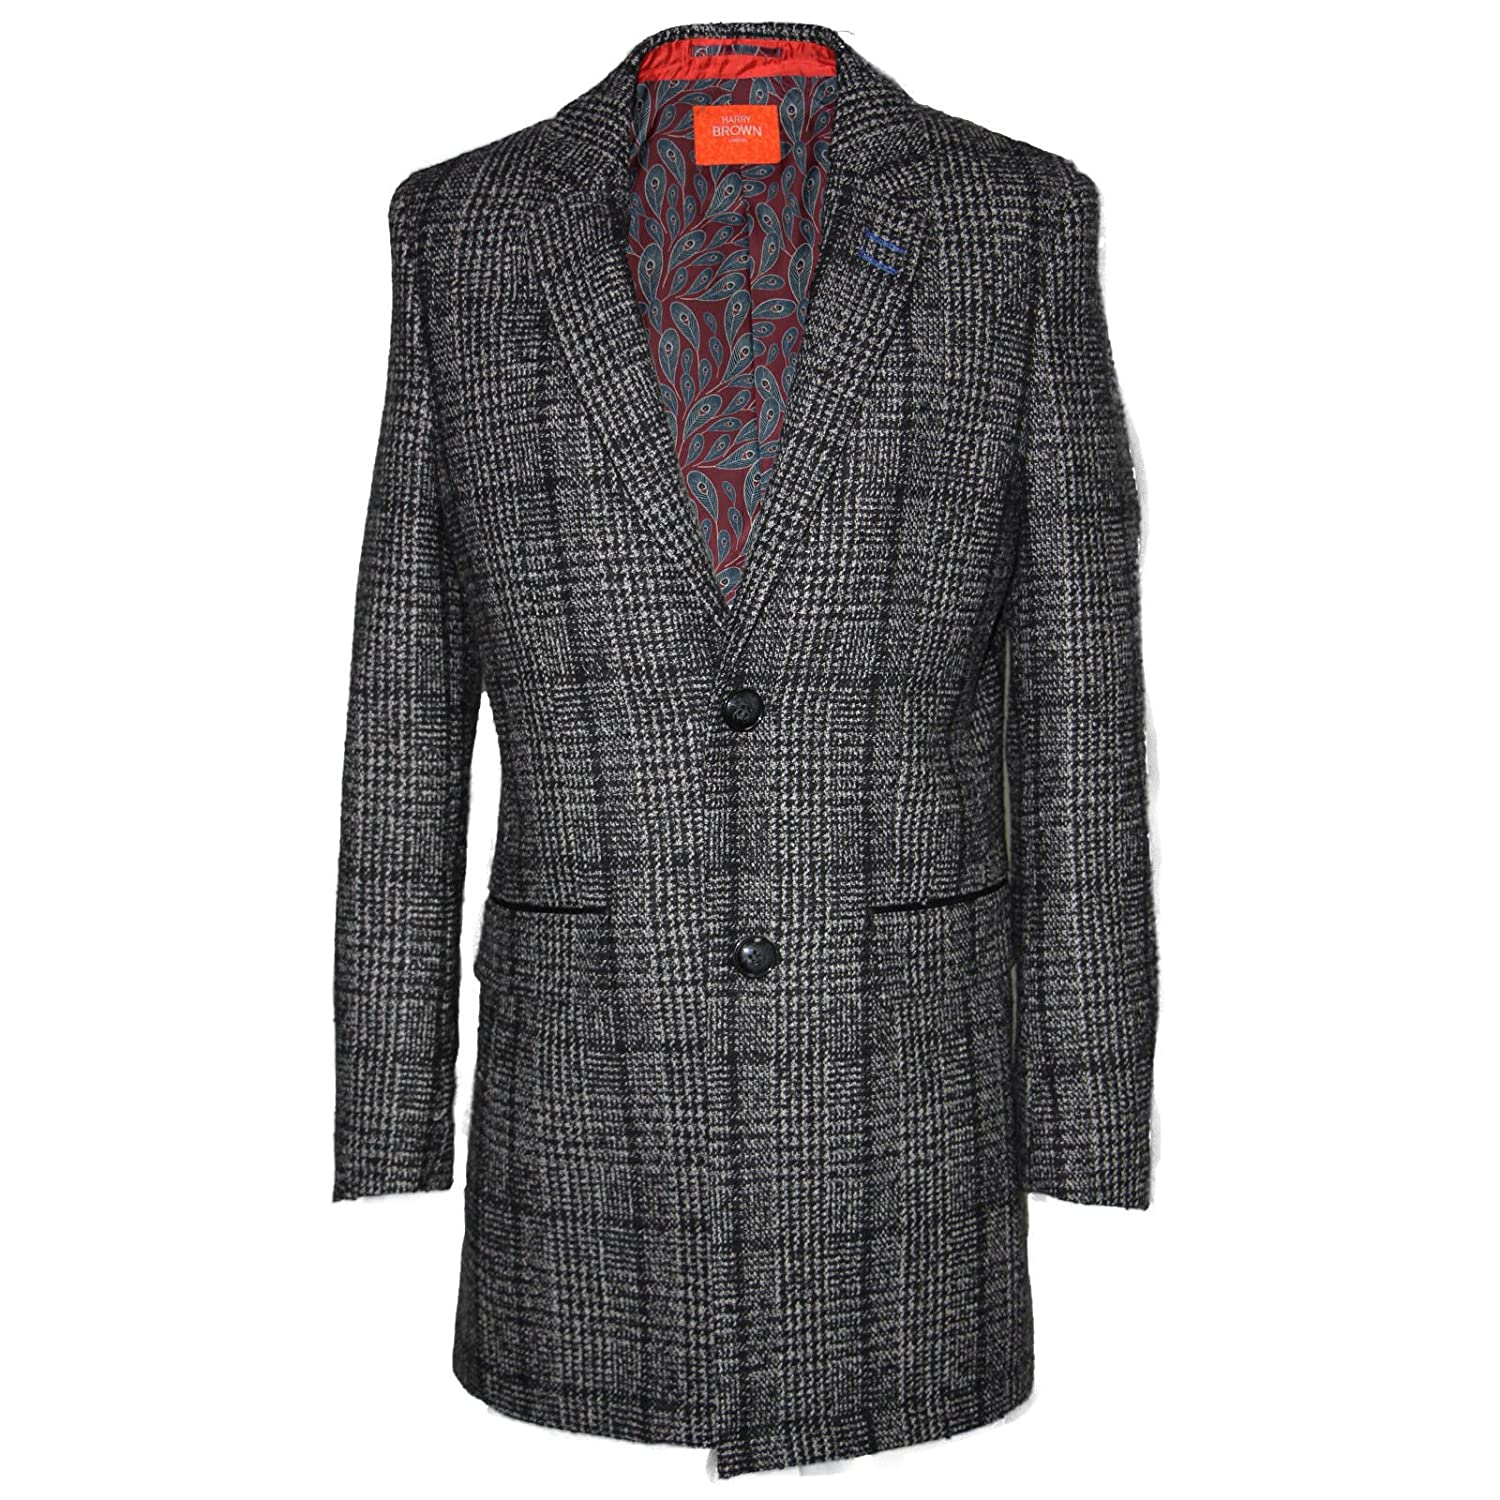 52413fd0b5ba Amazon.com: Harry Brown Single Breasted Wool Coat in Prince of Wales Check  S: Clothing